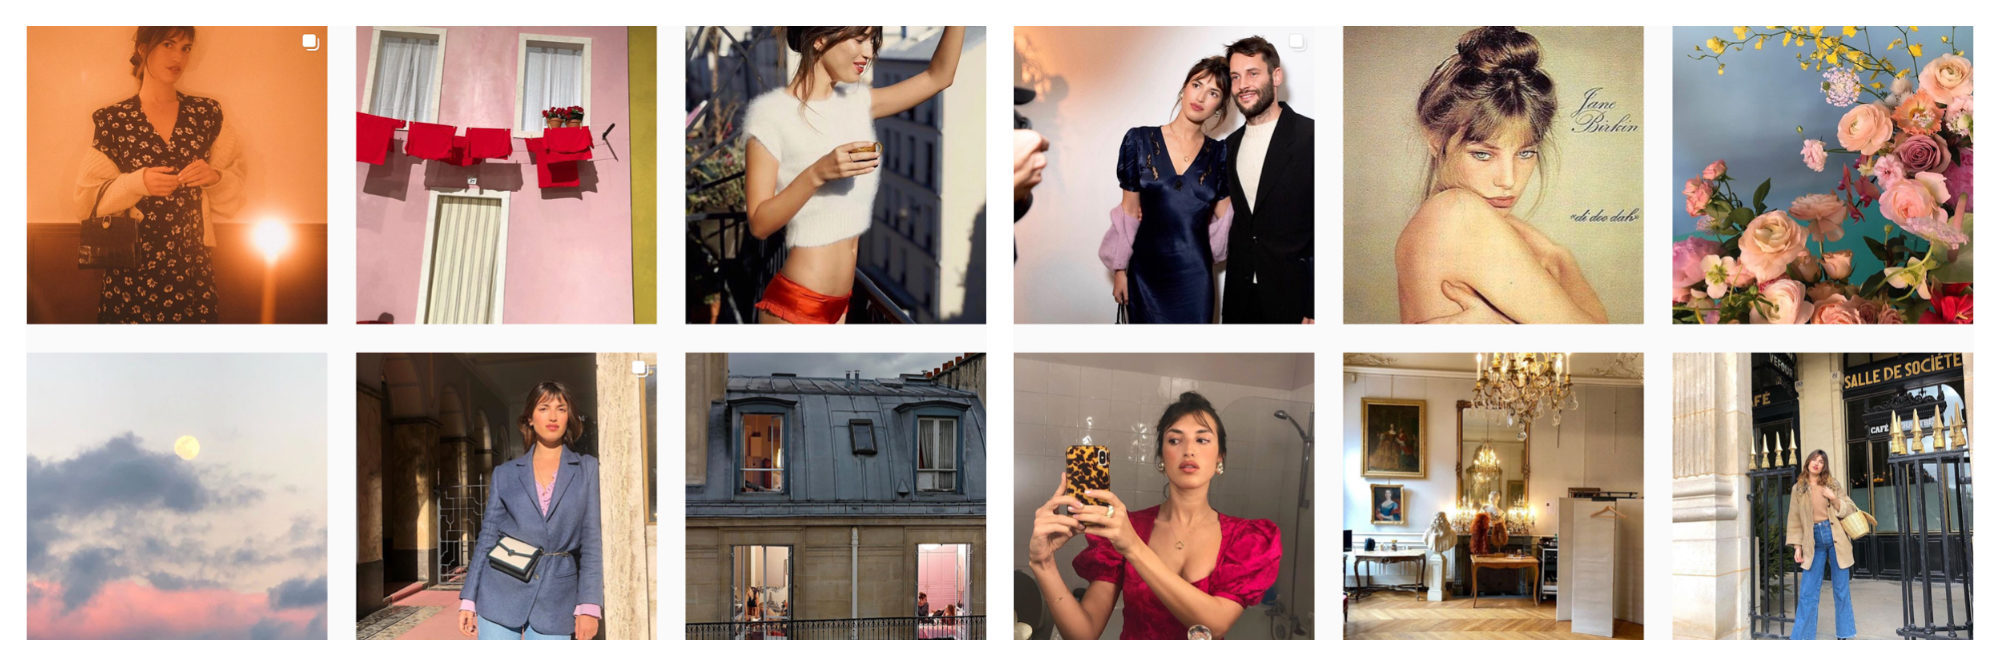 A selection of images of French Instagram fashion influencer Jeanne Damas.